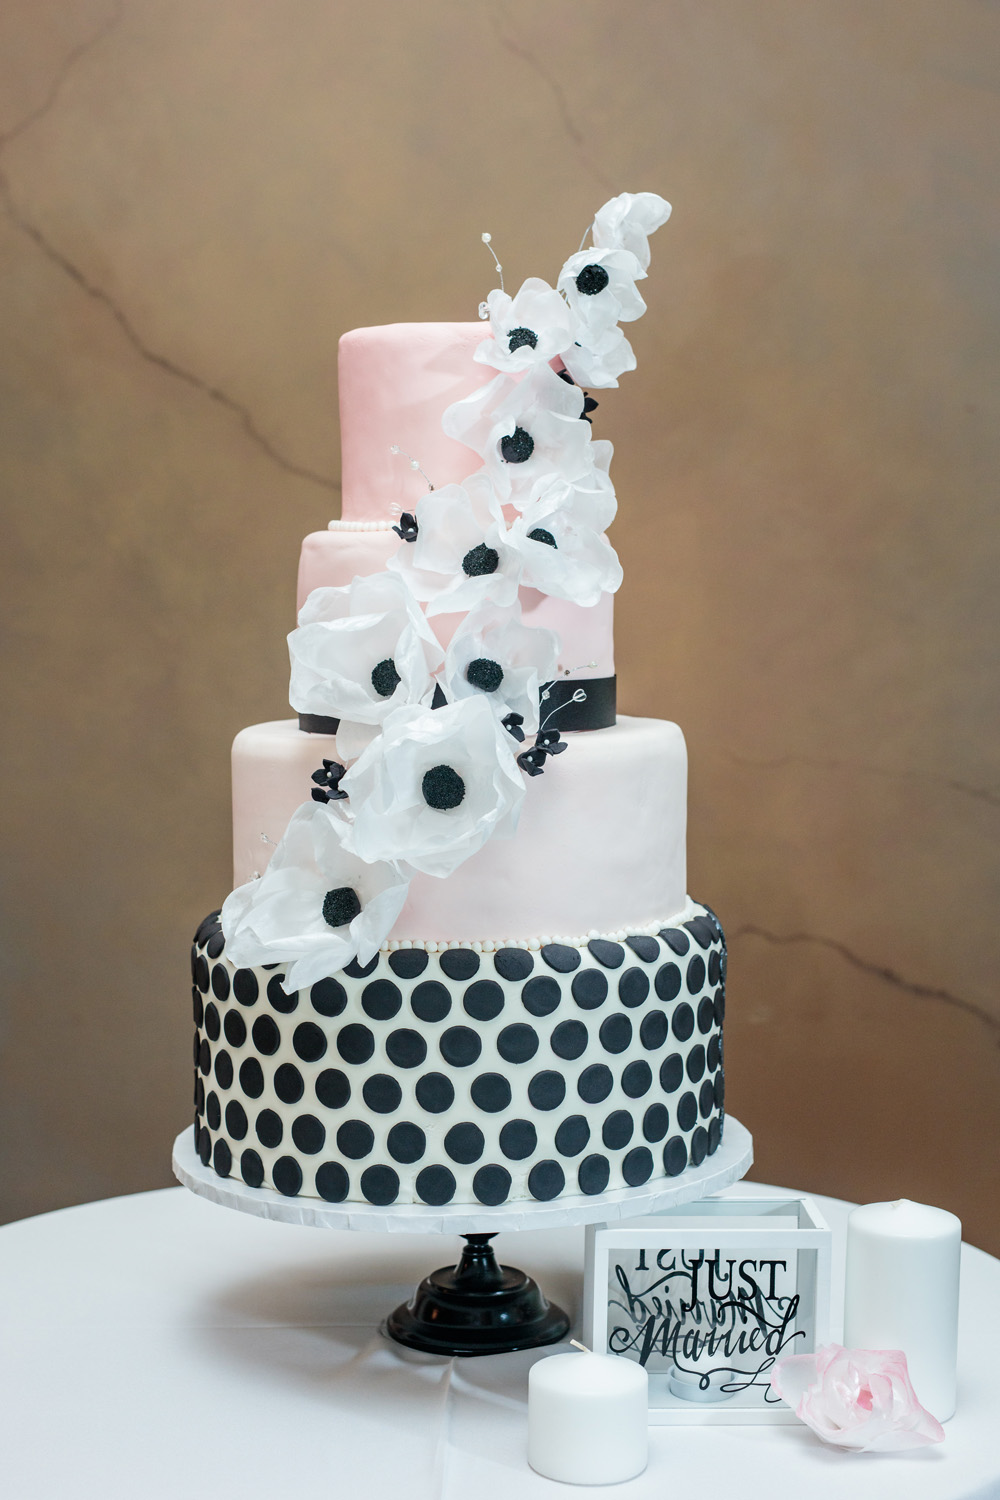 Cake Preview Marilyns Bakery The Wedding Mag - Wedding Cakes Hobart